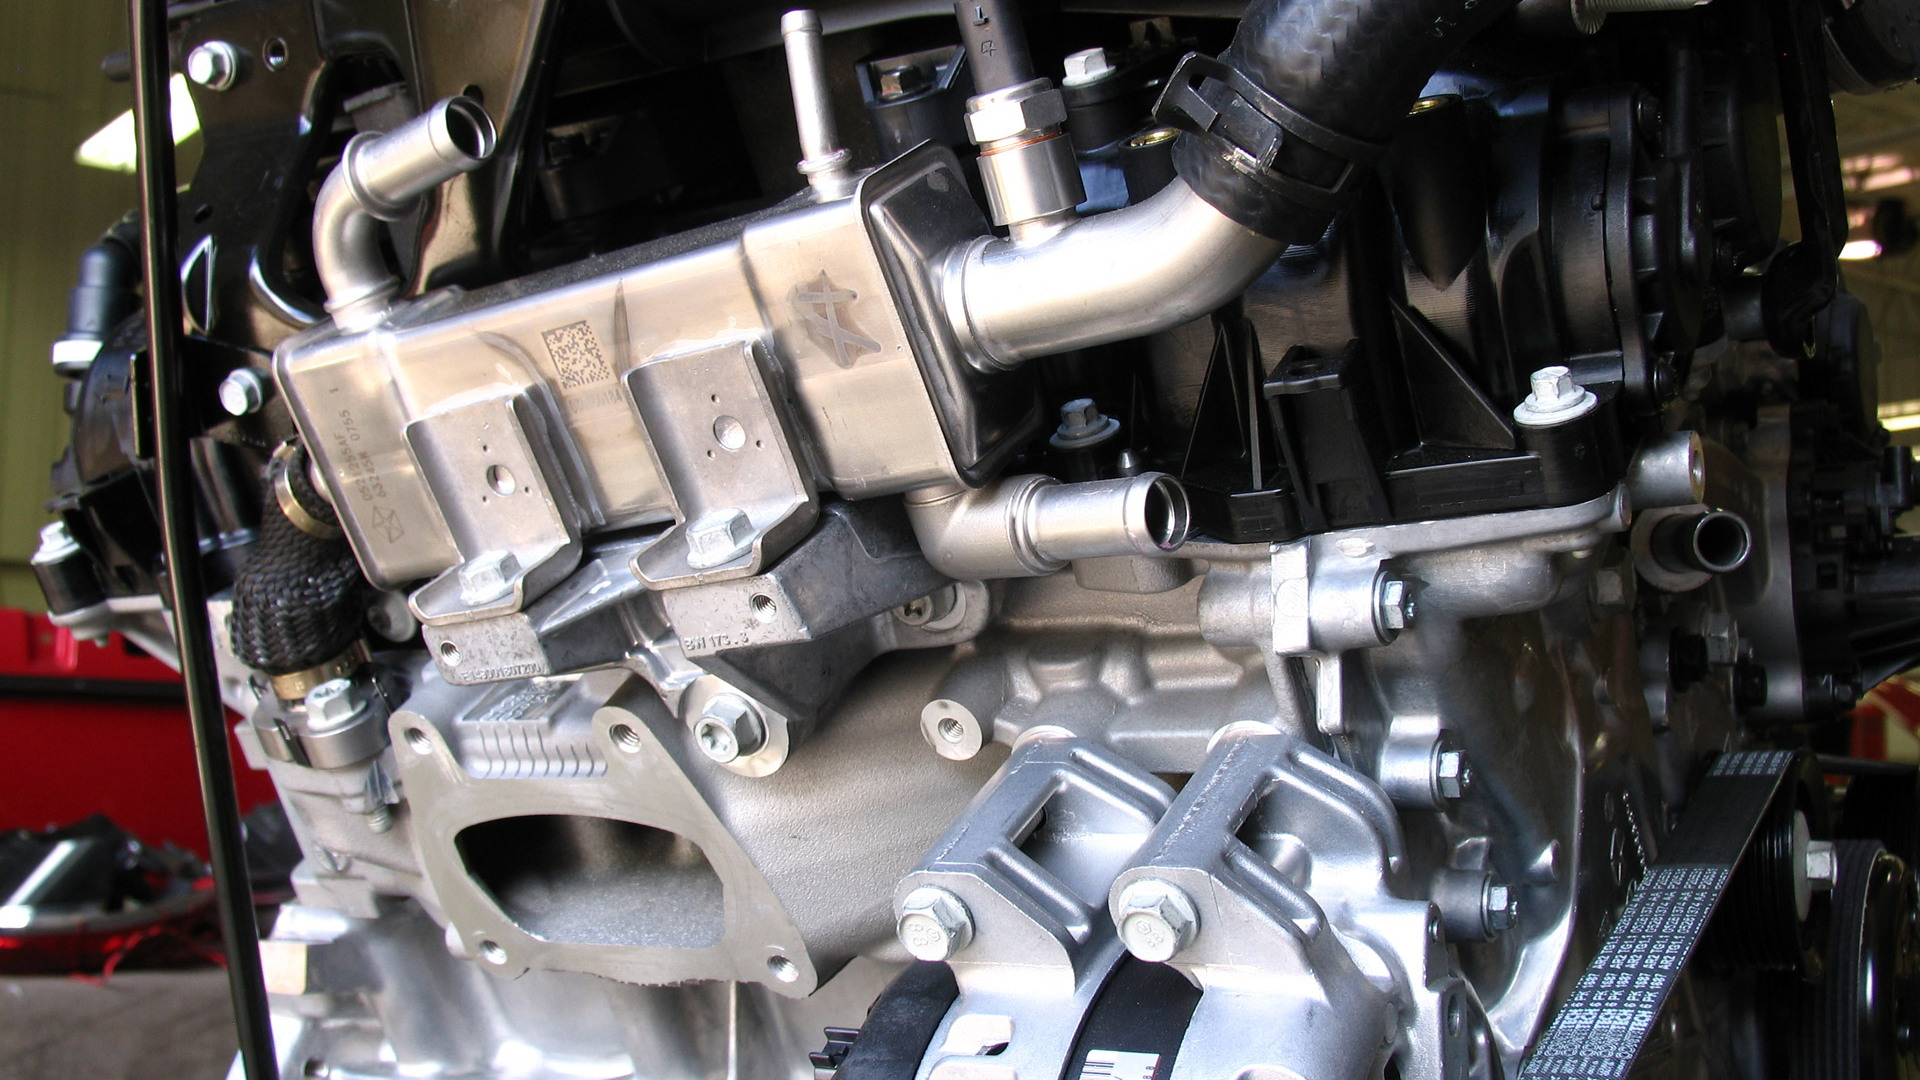 Fiat Chrysler Automobiles Pentastar V-6 engine